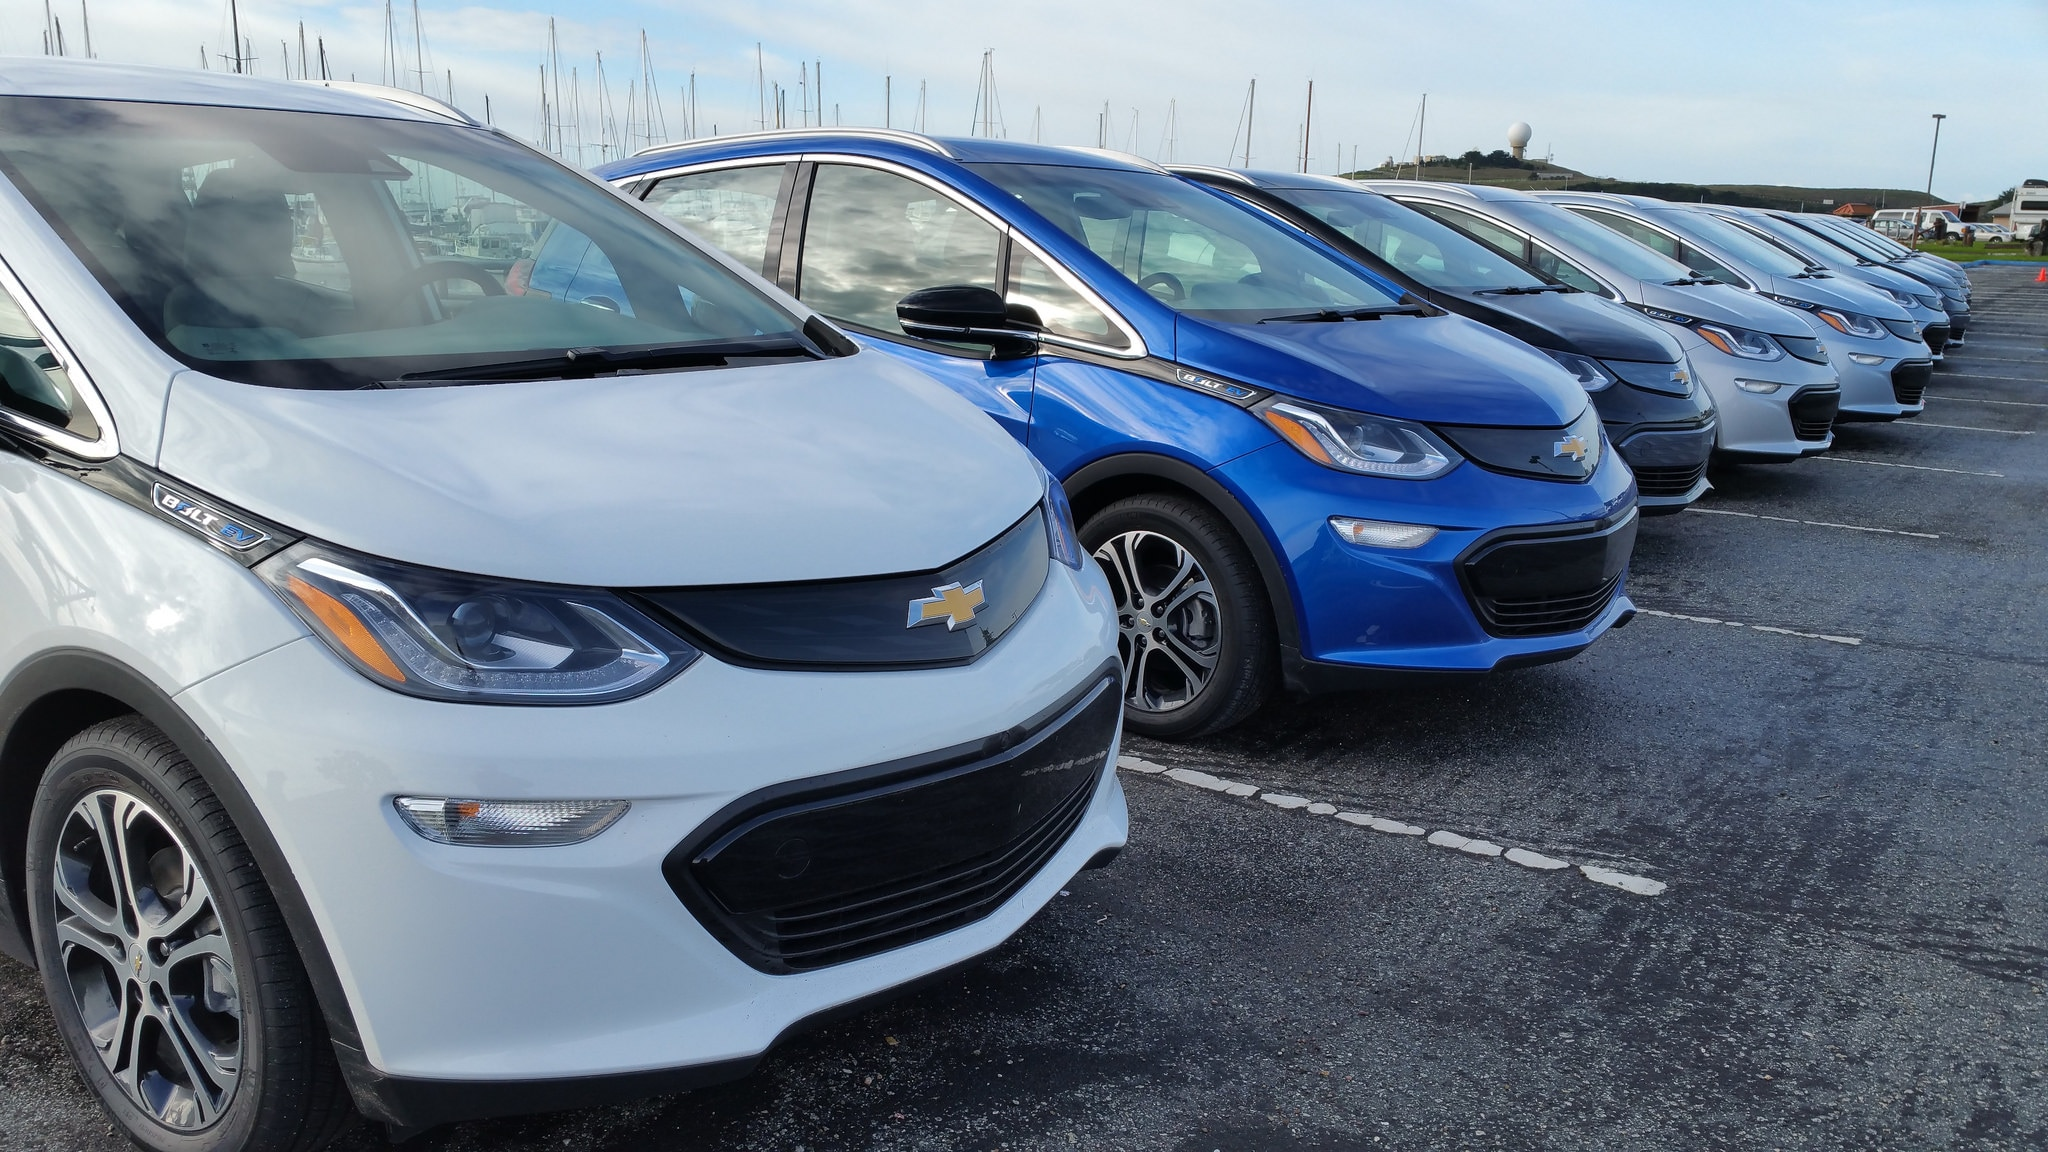 2017 Chevrolet Bolt EVs Row